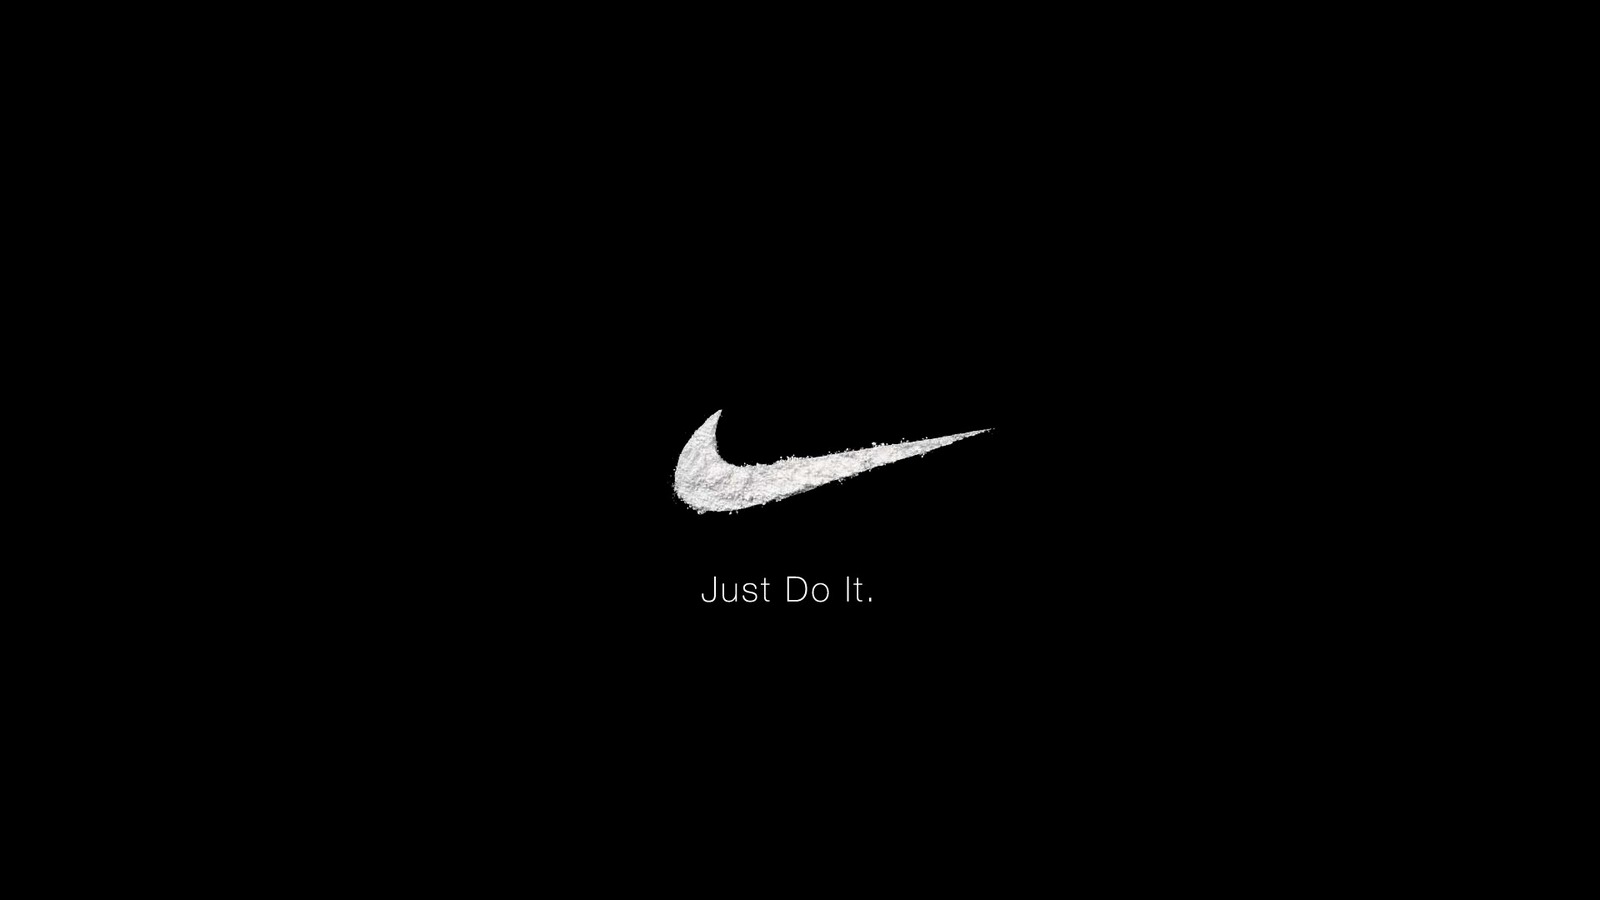 Cool Nike Logo Wallpaper | Wallpup.com